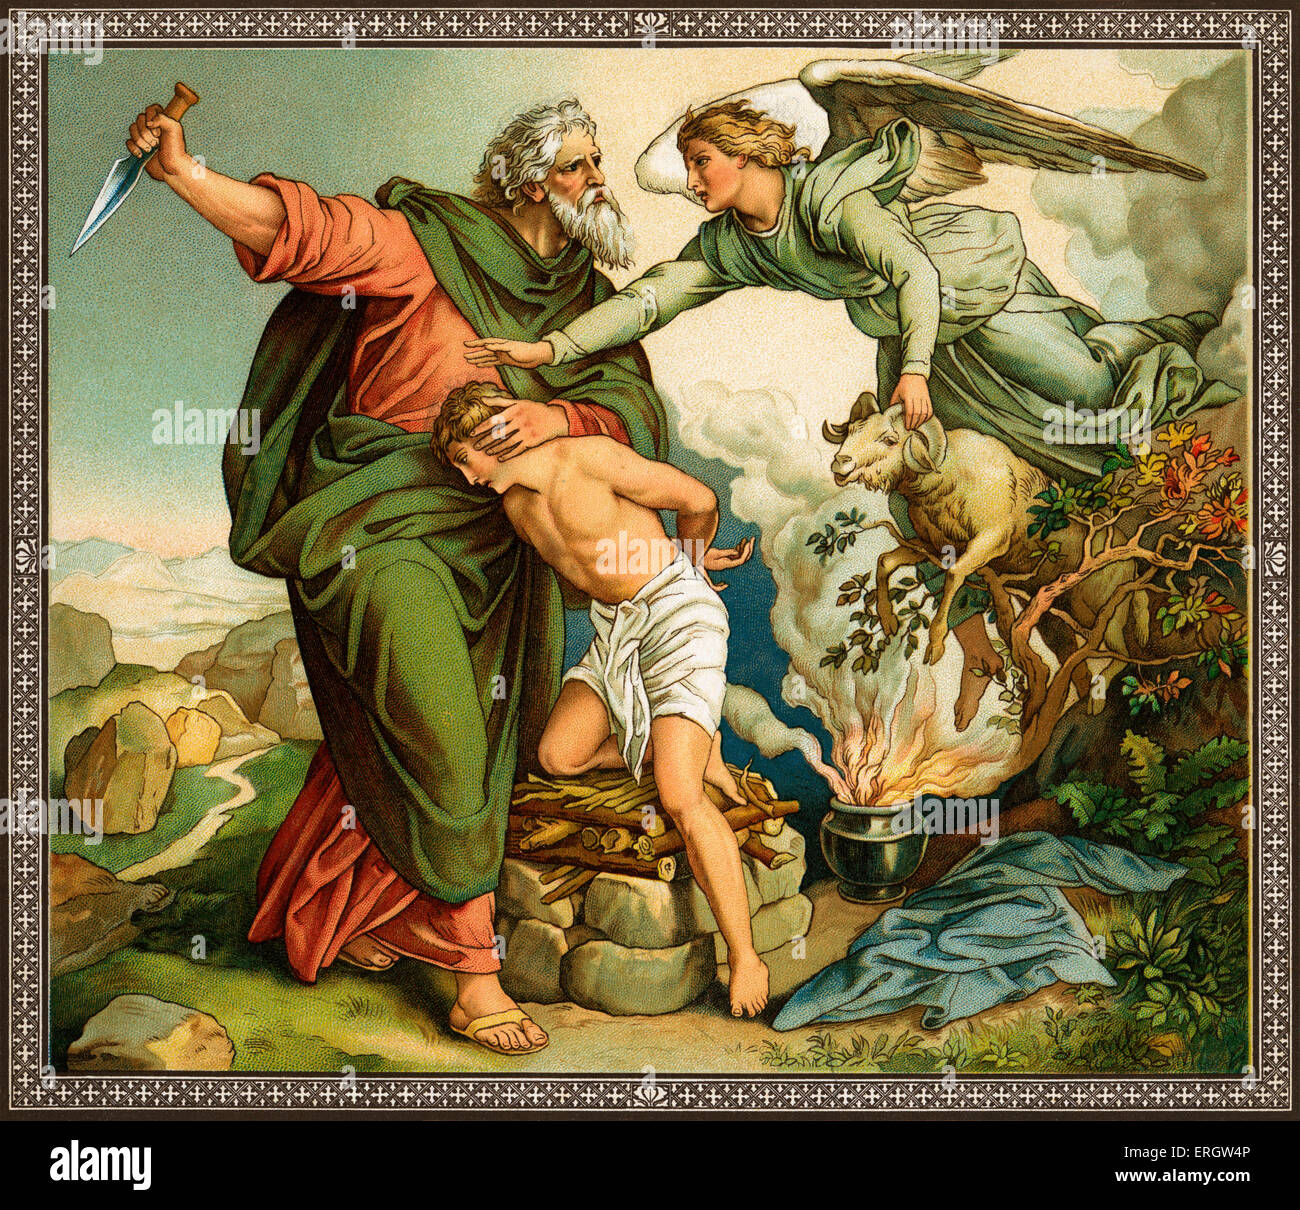 Abraham's faith in God - Believing he is fulfilling God's commandment Abraham tries to sacrifice Isaac instead - Stock Image